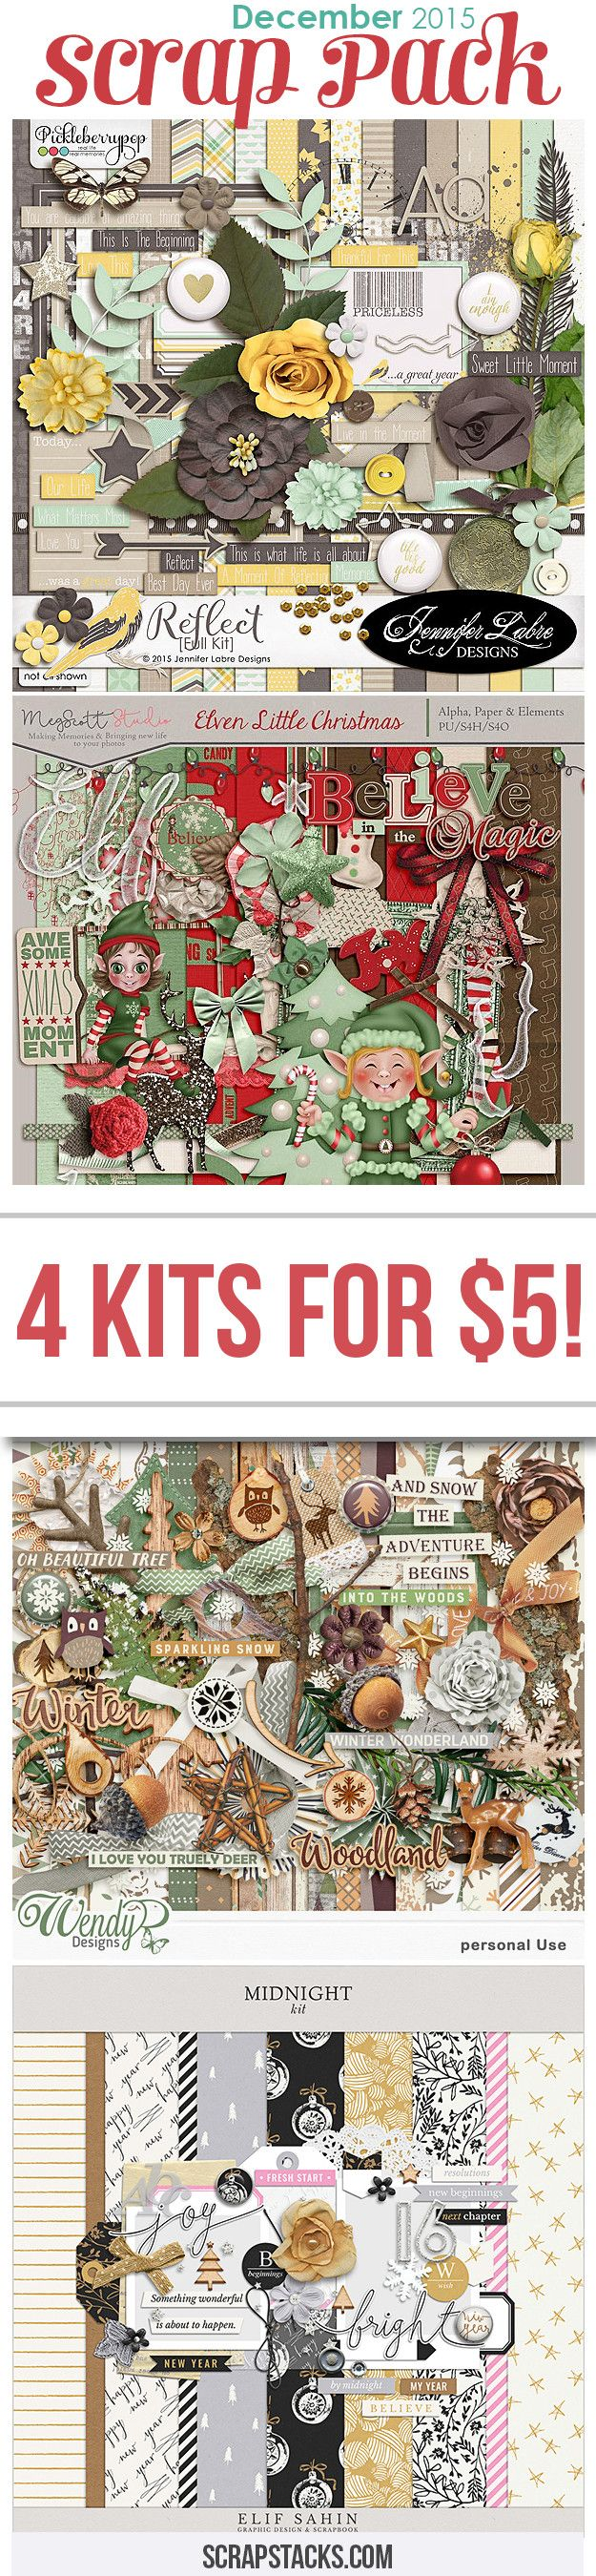 The December 2015 Scrap Pack is HERE! Get these 4 delightful kits for just $5! :)